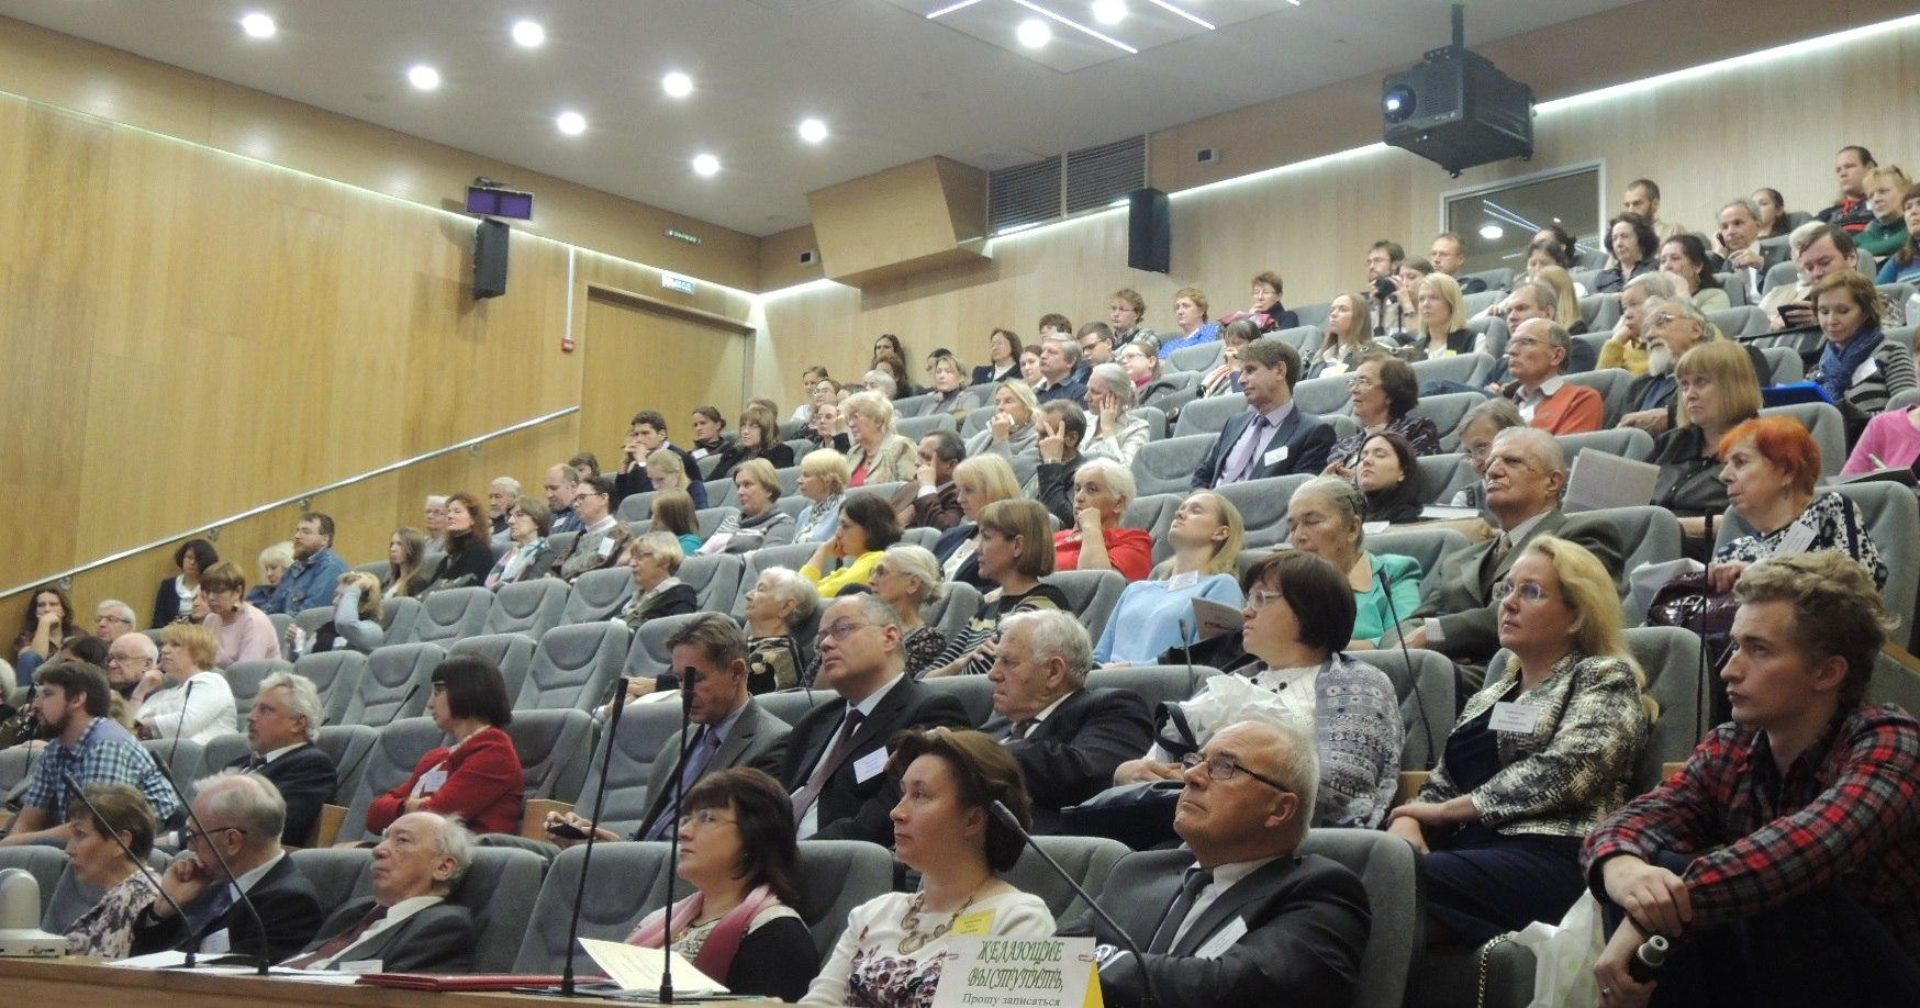 XVI CONFERENCE WITH INTERNATIONAL PARTICIPATION AND IX SCHOOL ON EVOLUTIONARY PHYSIOLOGY